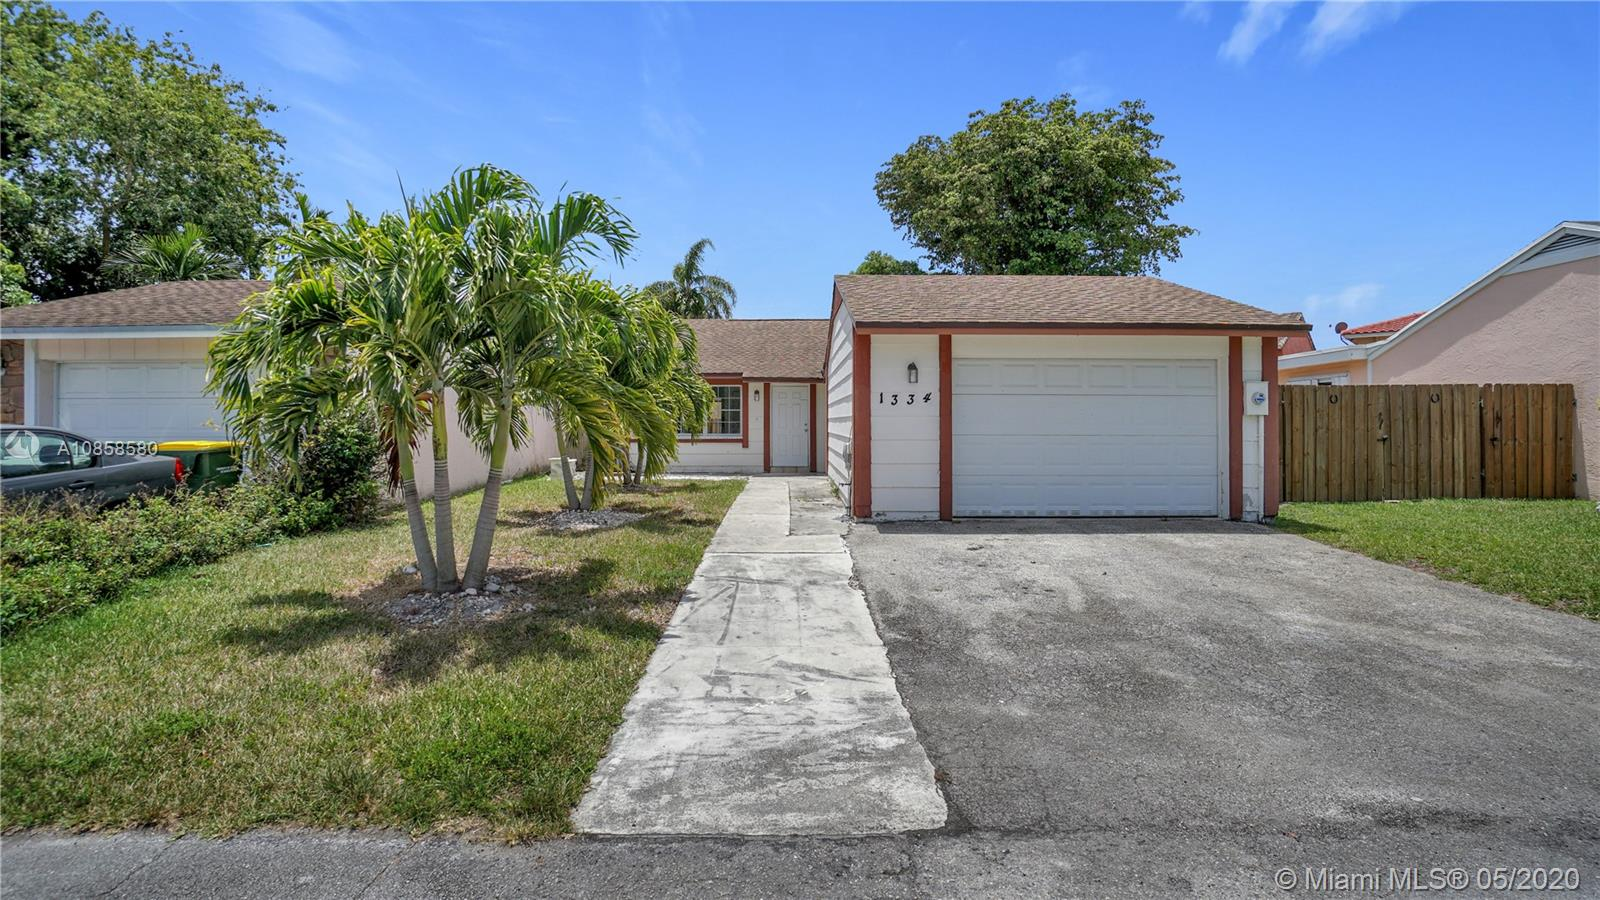 1334 S Quetzal Ct Property Photo - Homestead, FL real estate listing